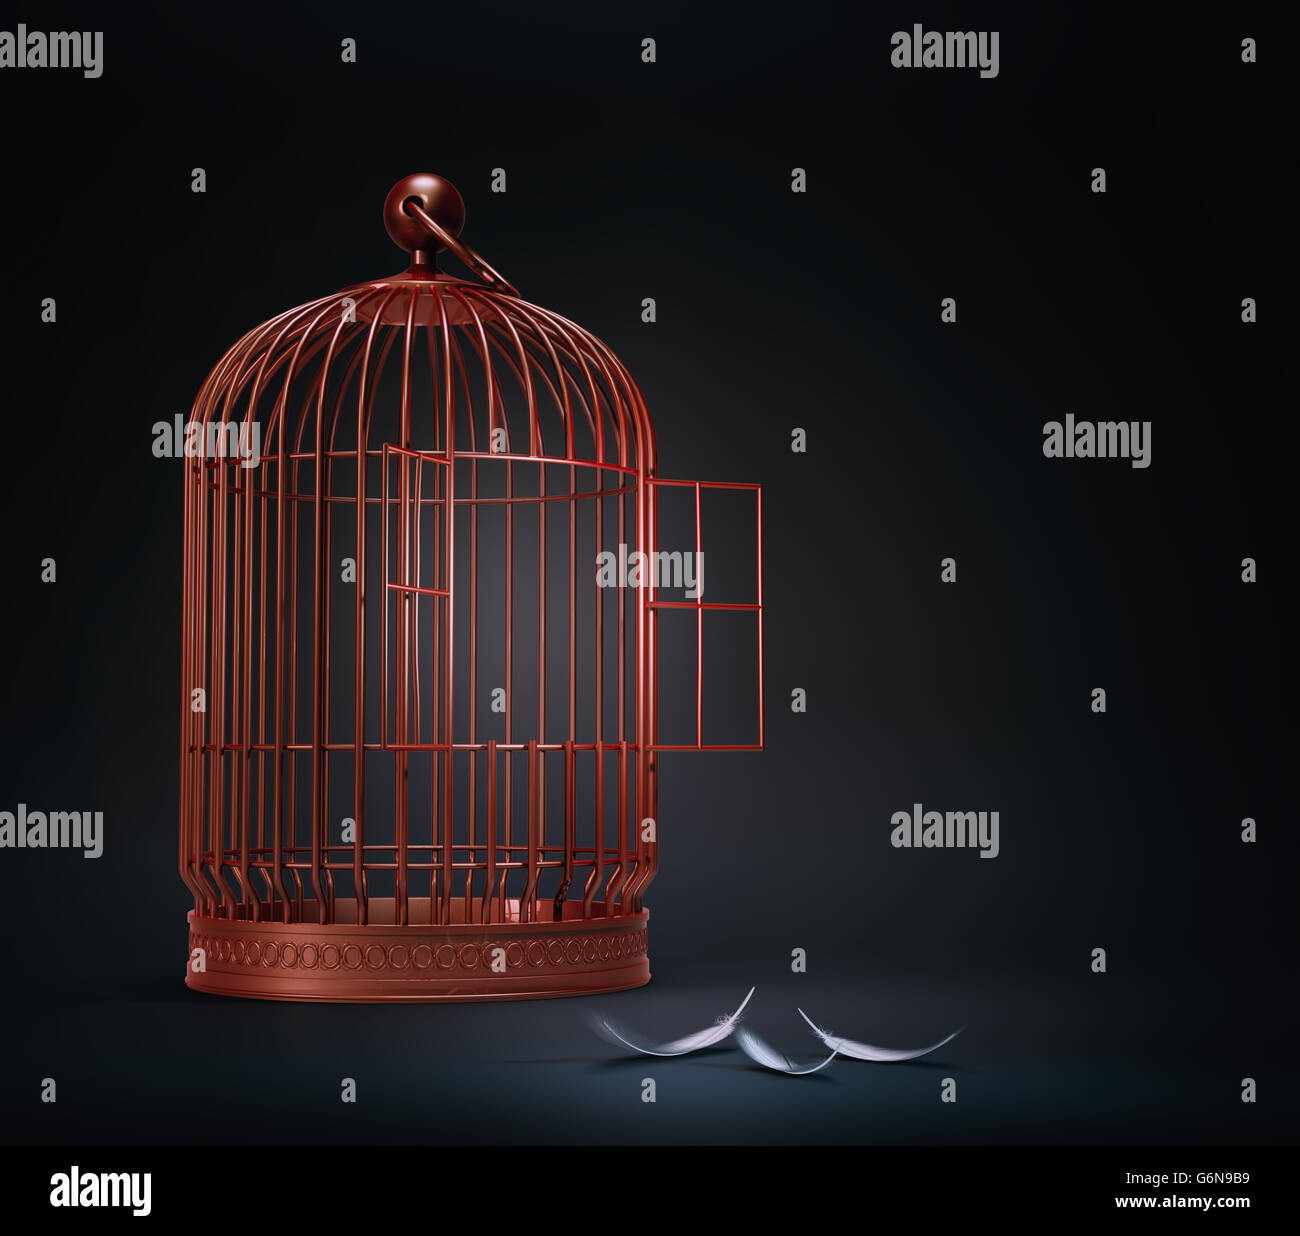 An open bird cage with feathers - freedom concept illustration - Stock Image